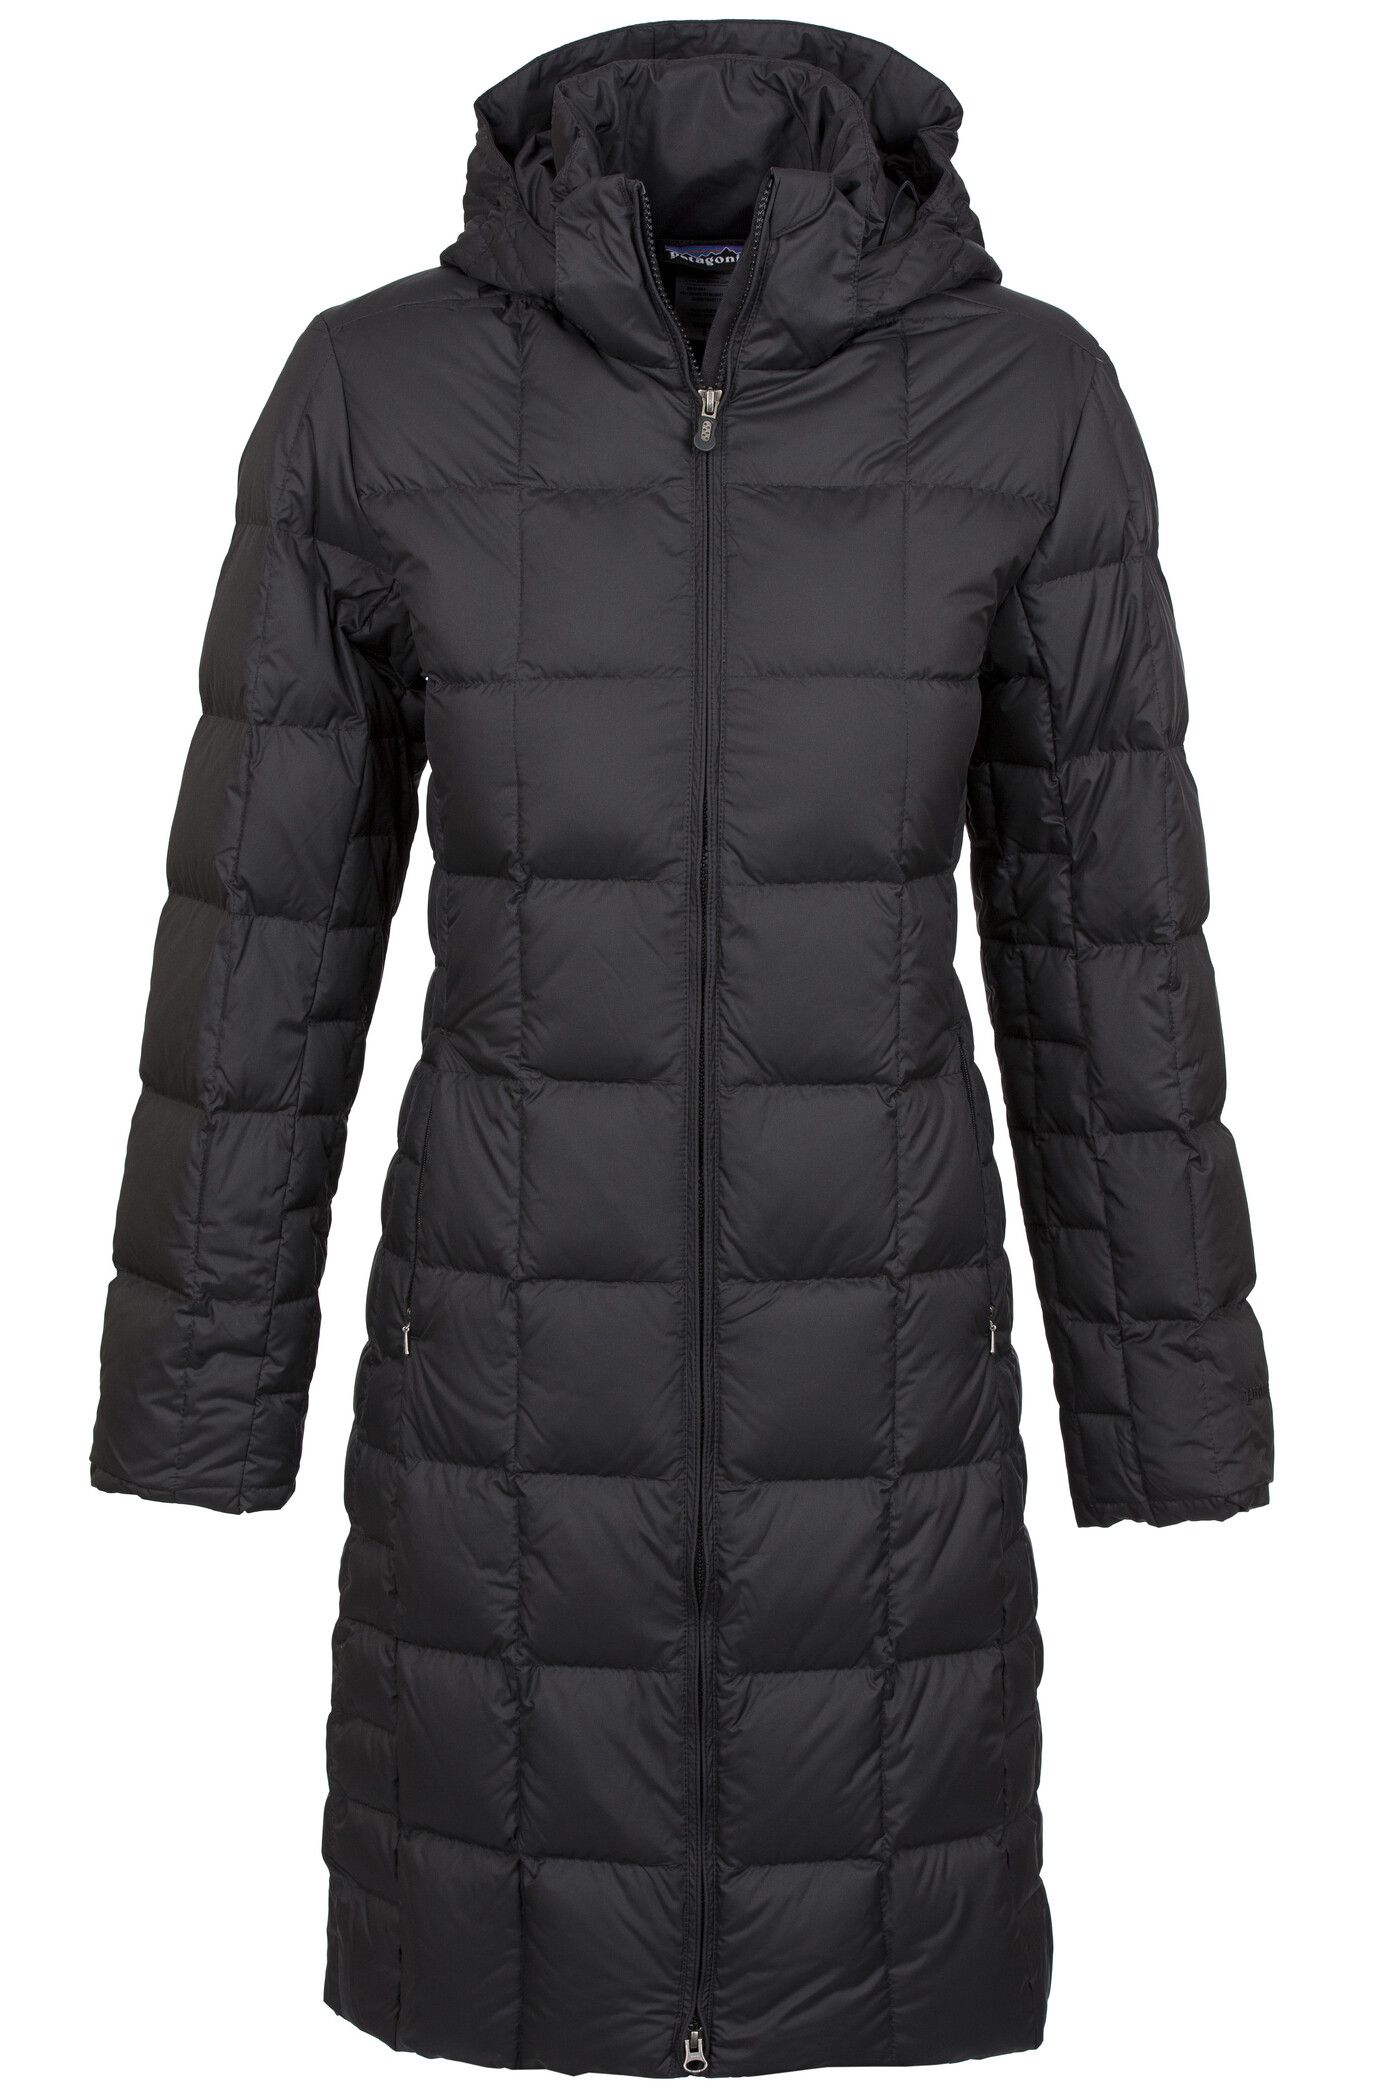 Patagonia Down With It Parka Women's black M